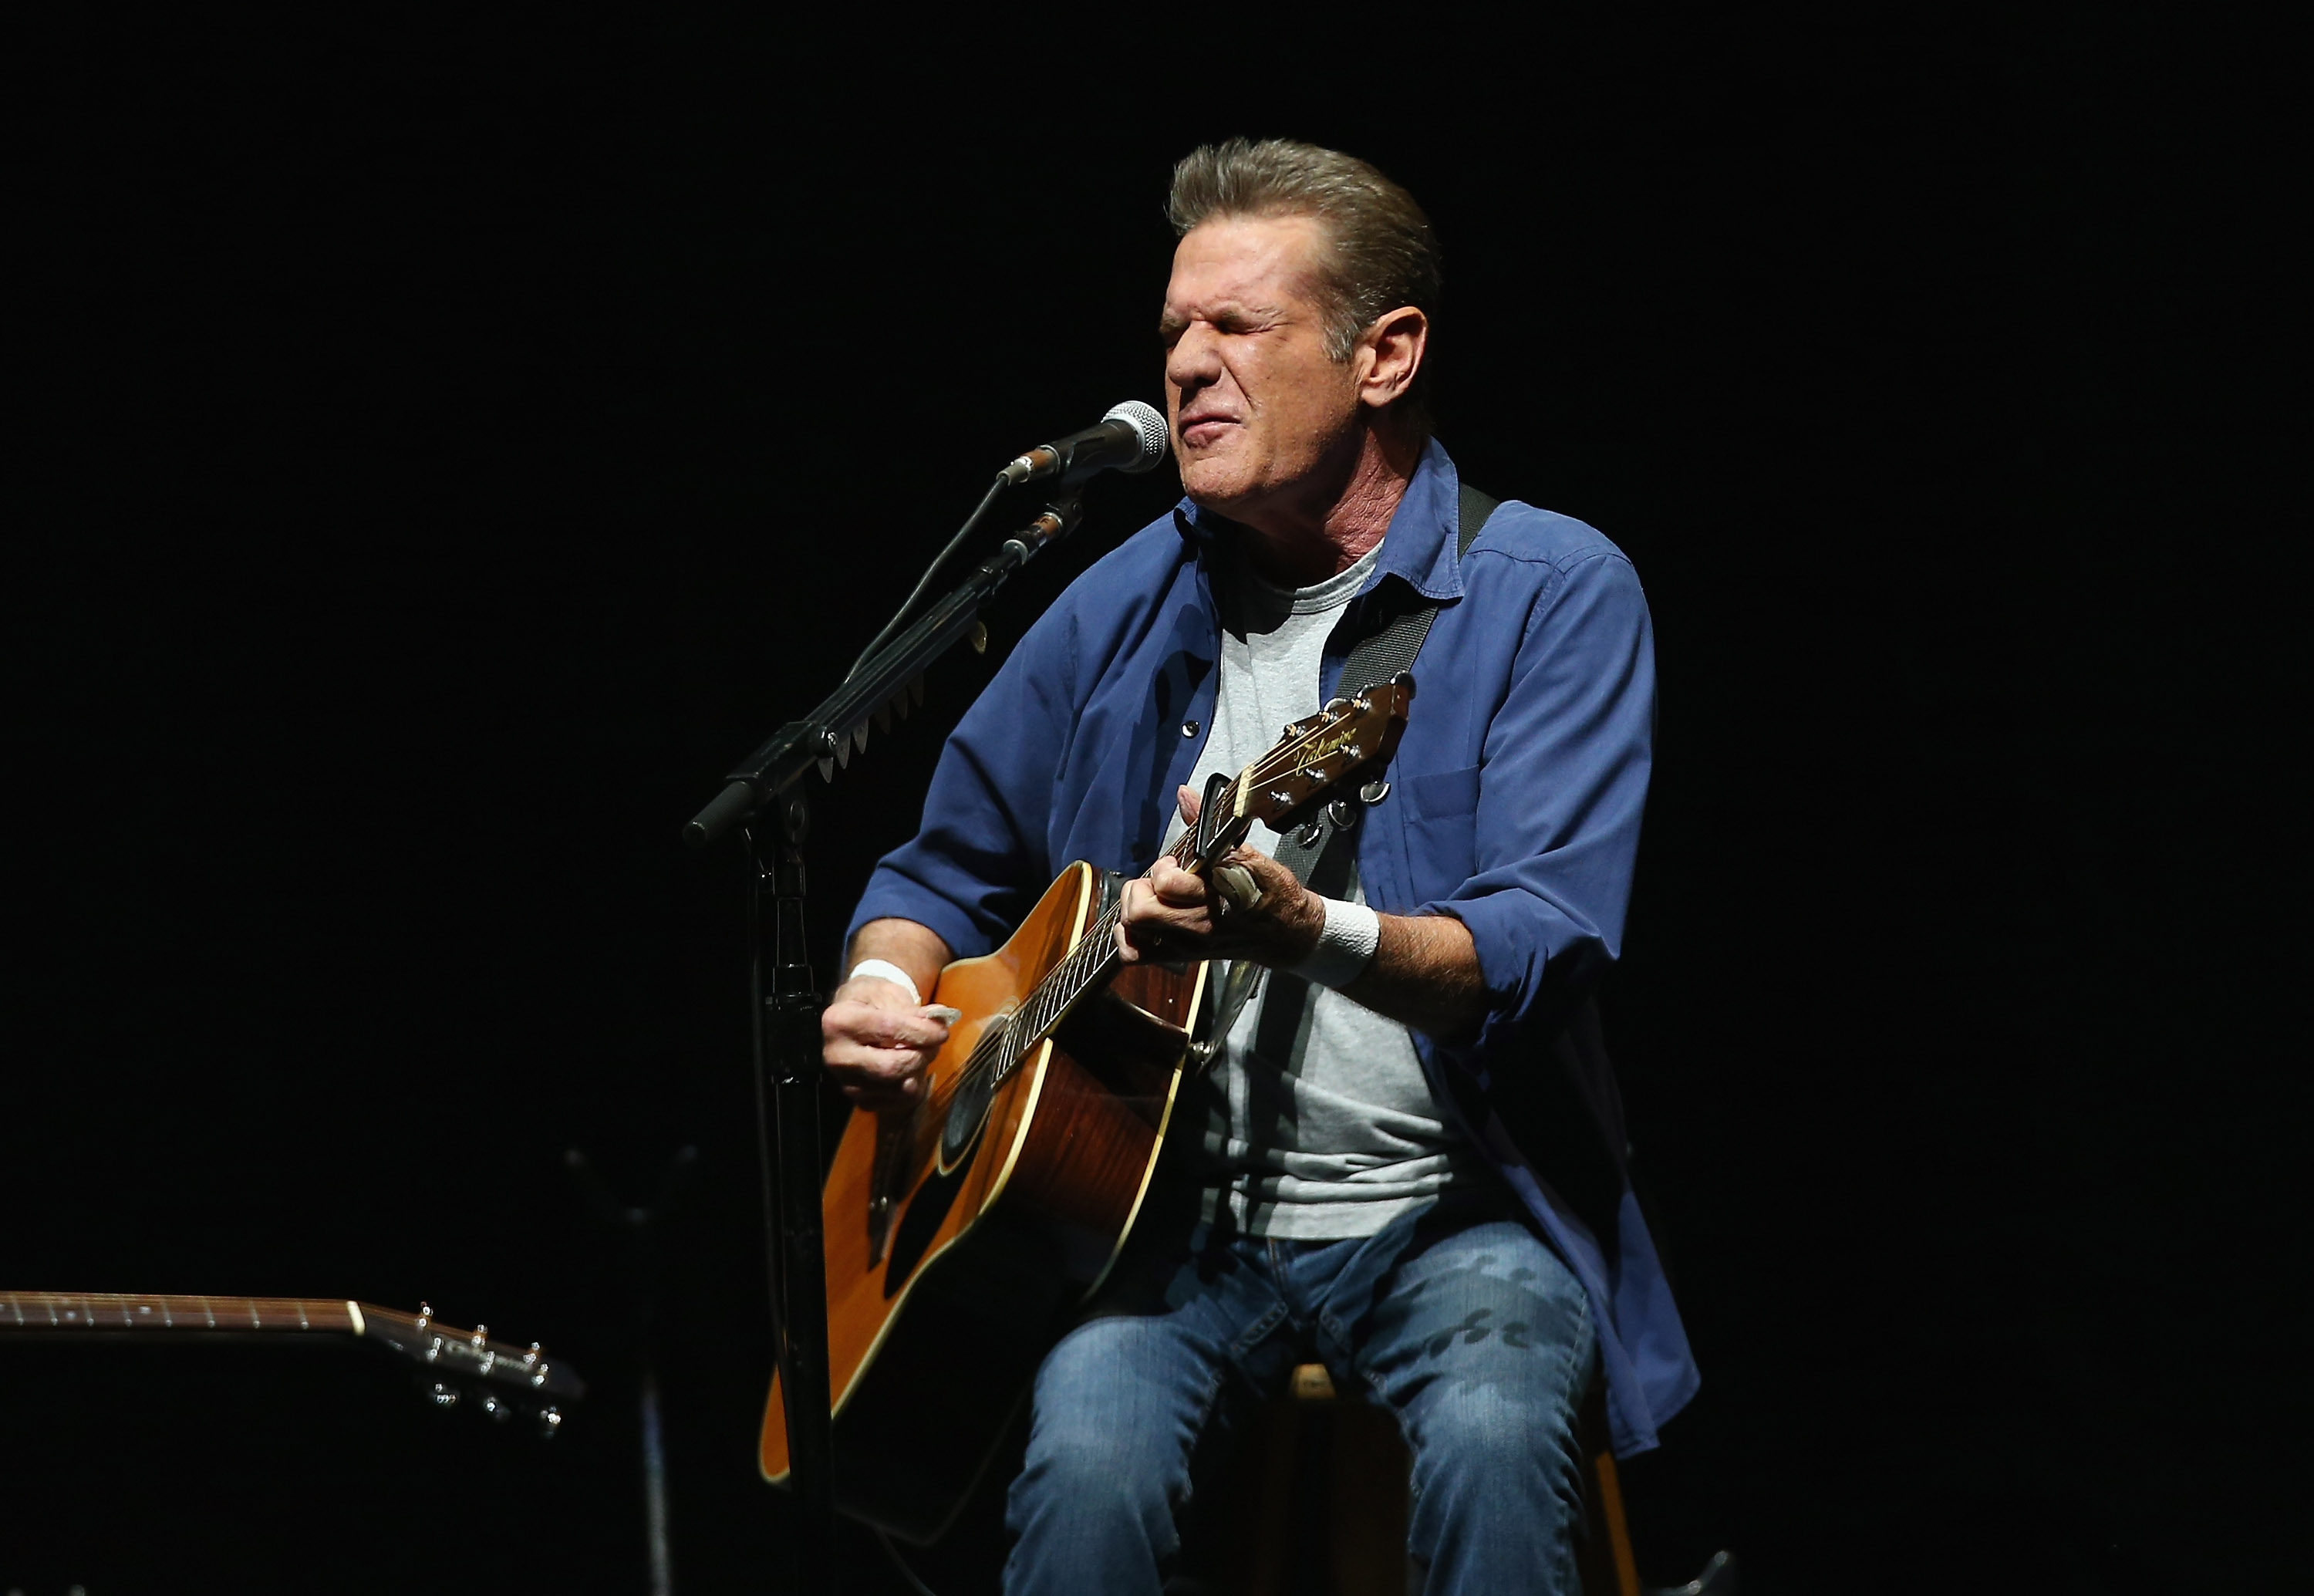 FREY The Eagles Tour - Sydney